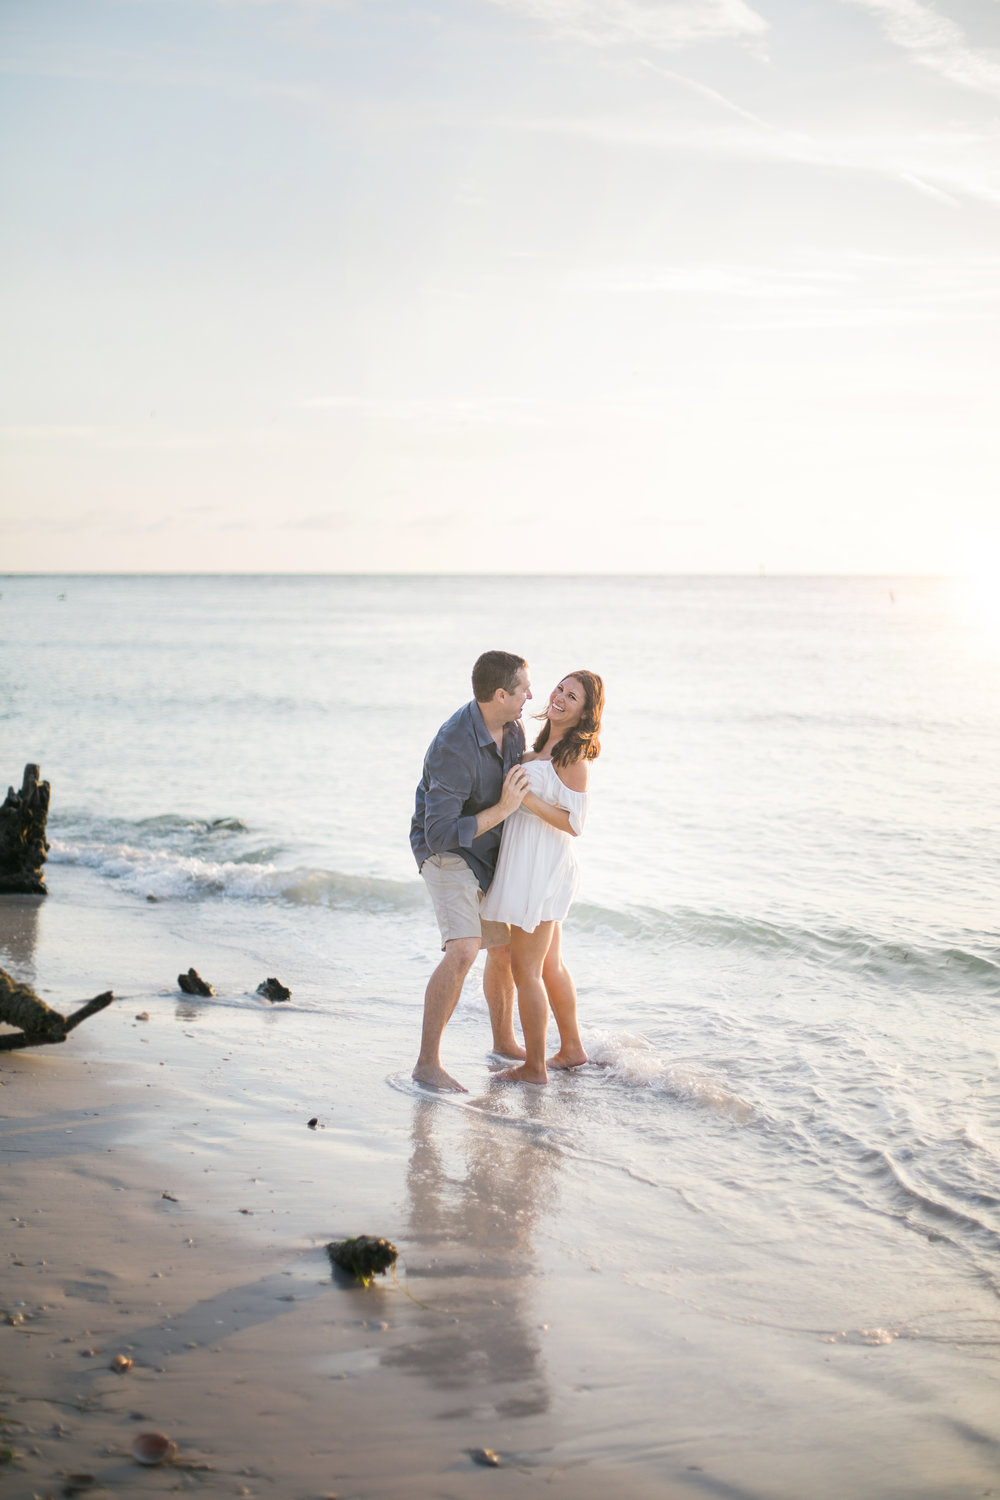 Alicia + Matt - Sarasota Engagement Photography - Sarasota Florida Beach Engagement Session - Emily & Co. PhotographyAlicia + Matt - Sarasota Engagement Photography - Sarasota Florida Beach Engagement Session - Emily & Co. Photography